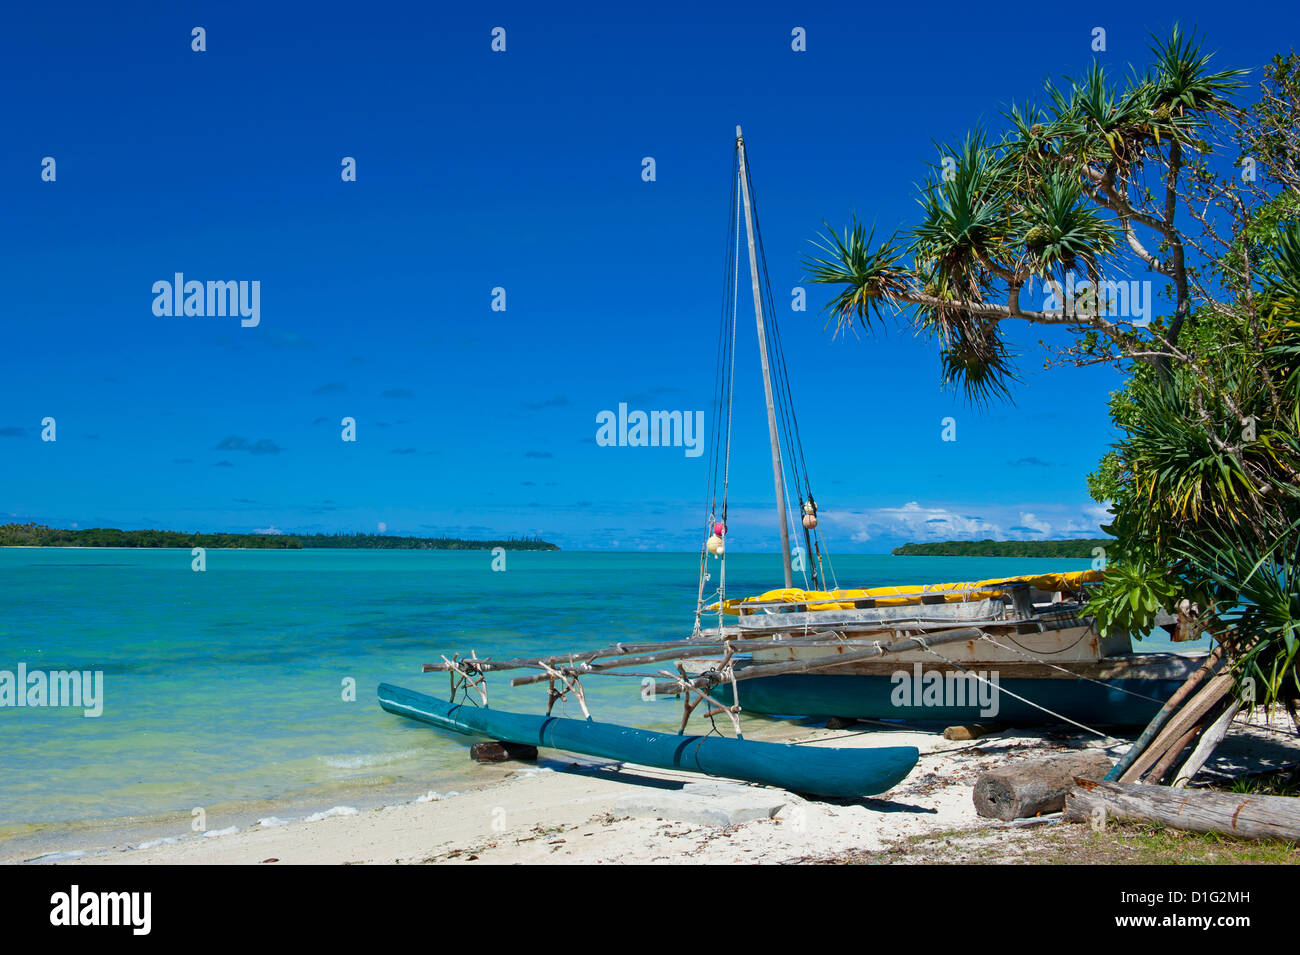 Ile des Pins, New Caledonia, Melanesia, South Pacific, Pacific - Stock Image